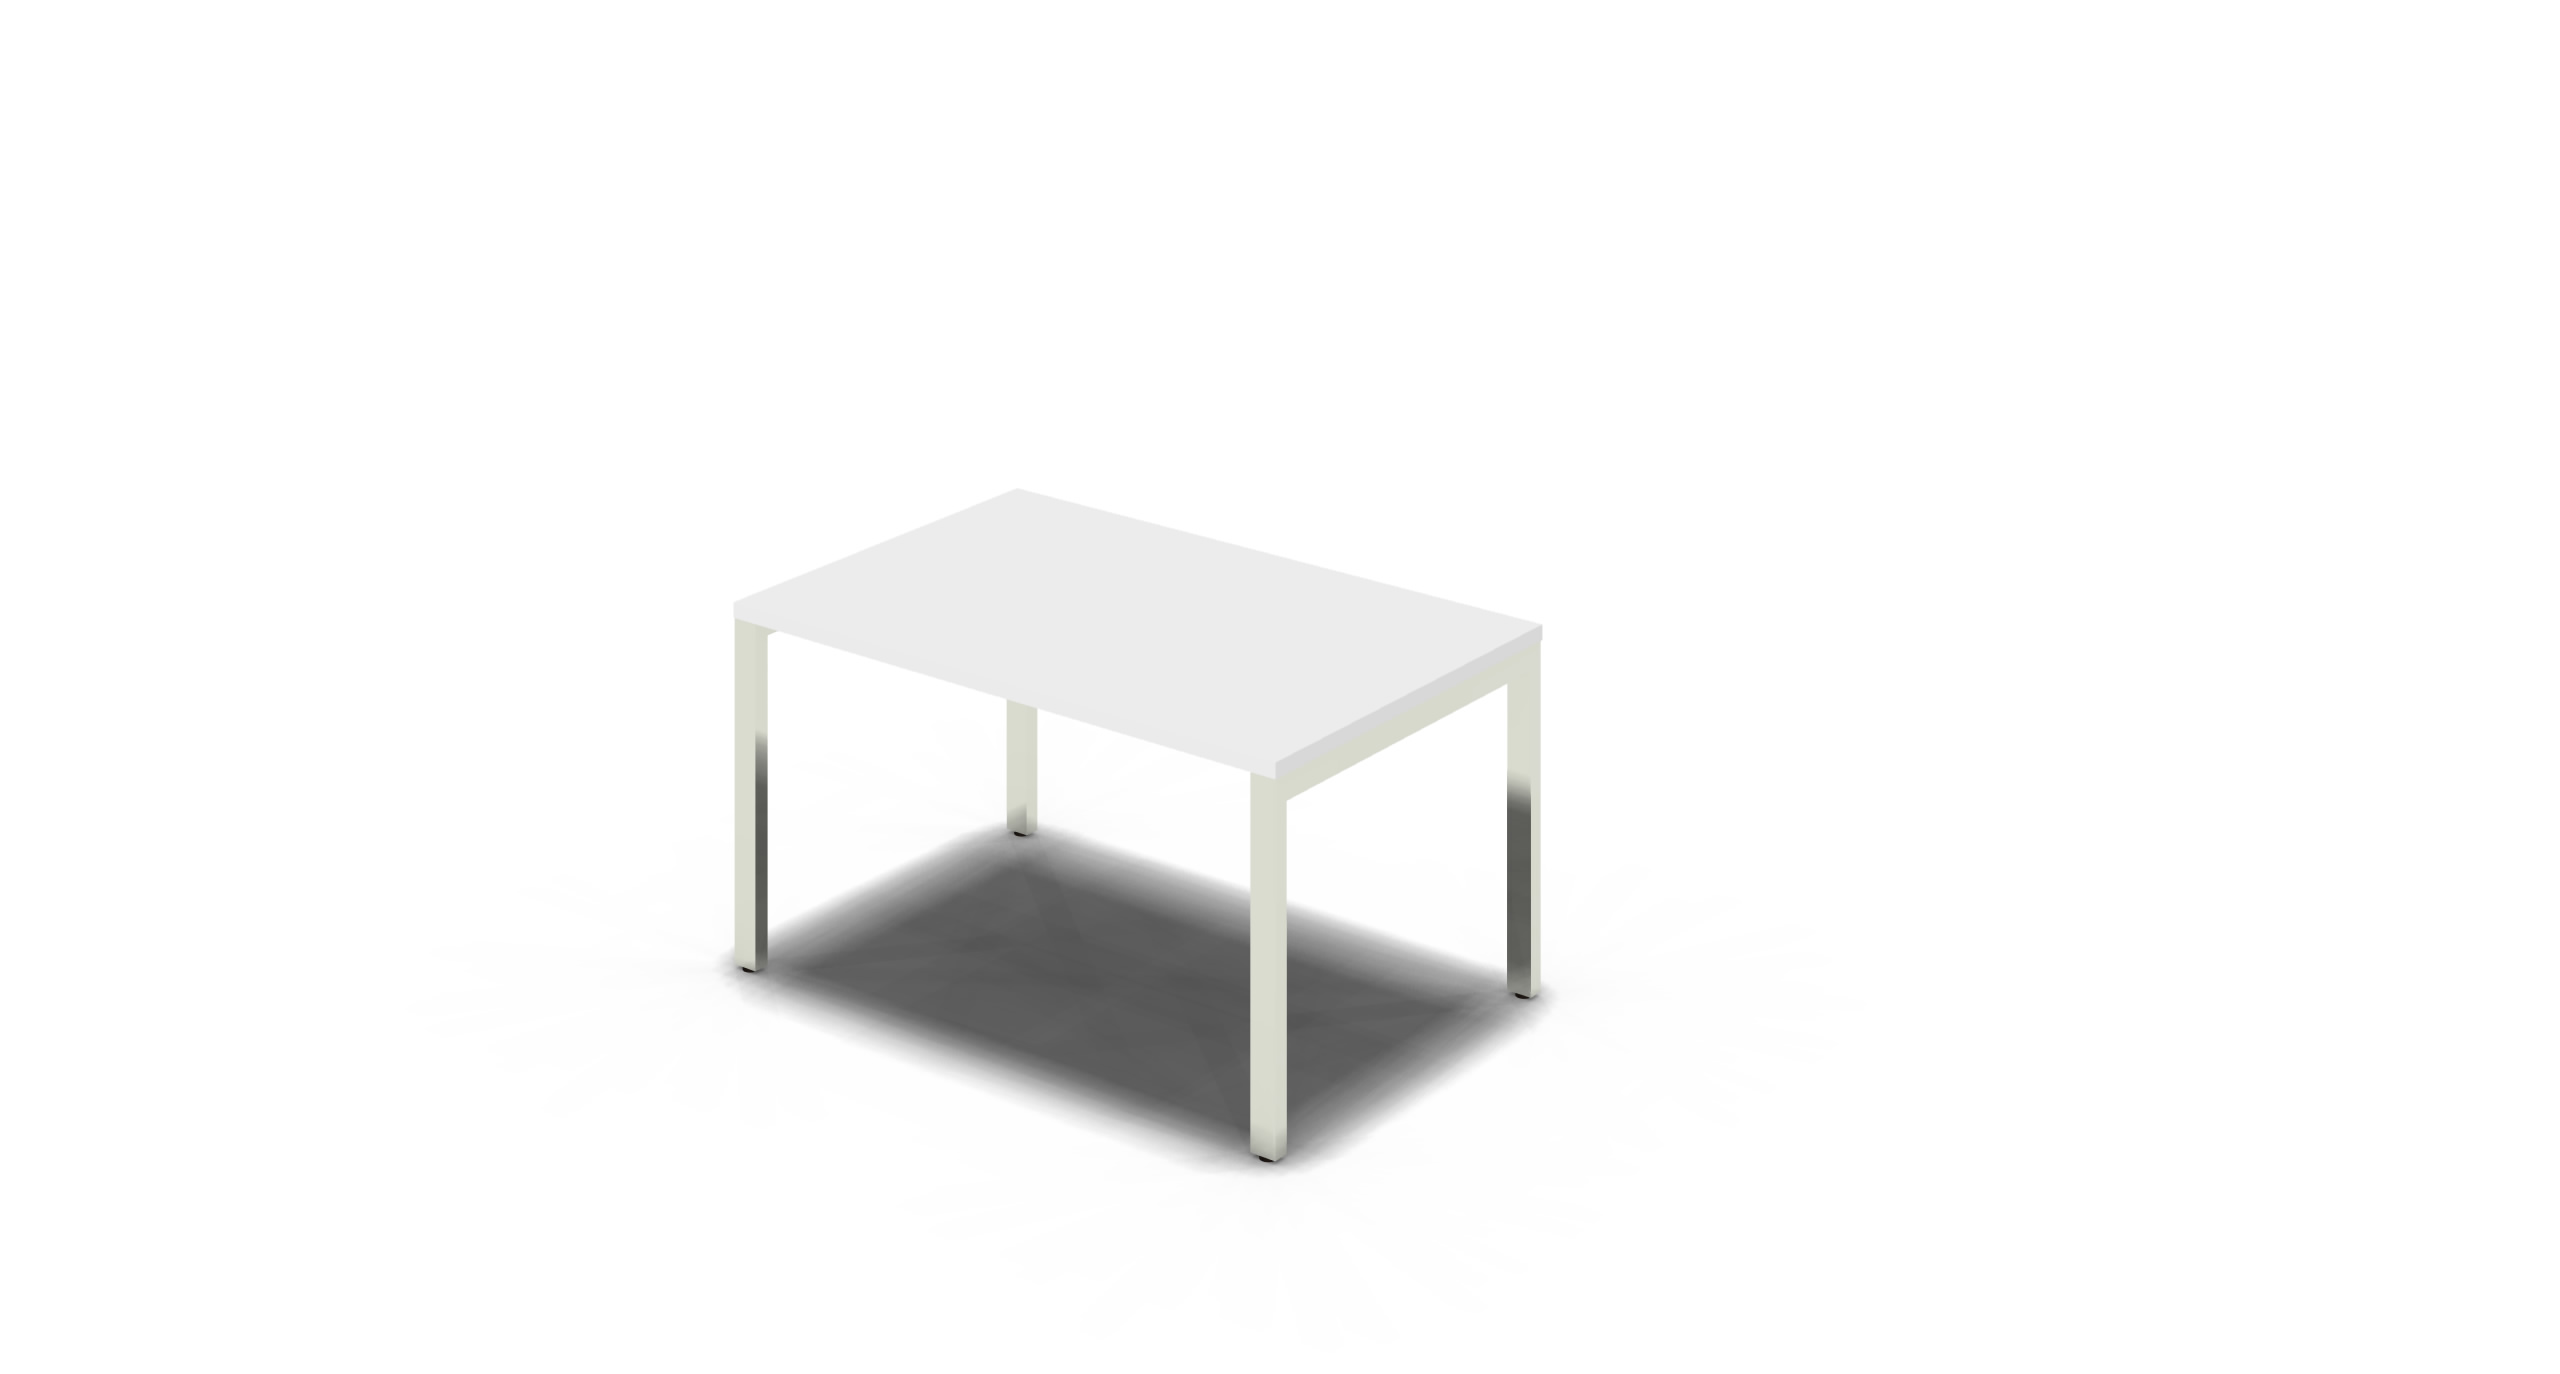 Table_Square_1200x750_Chrome_White_noOption